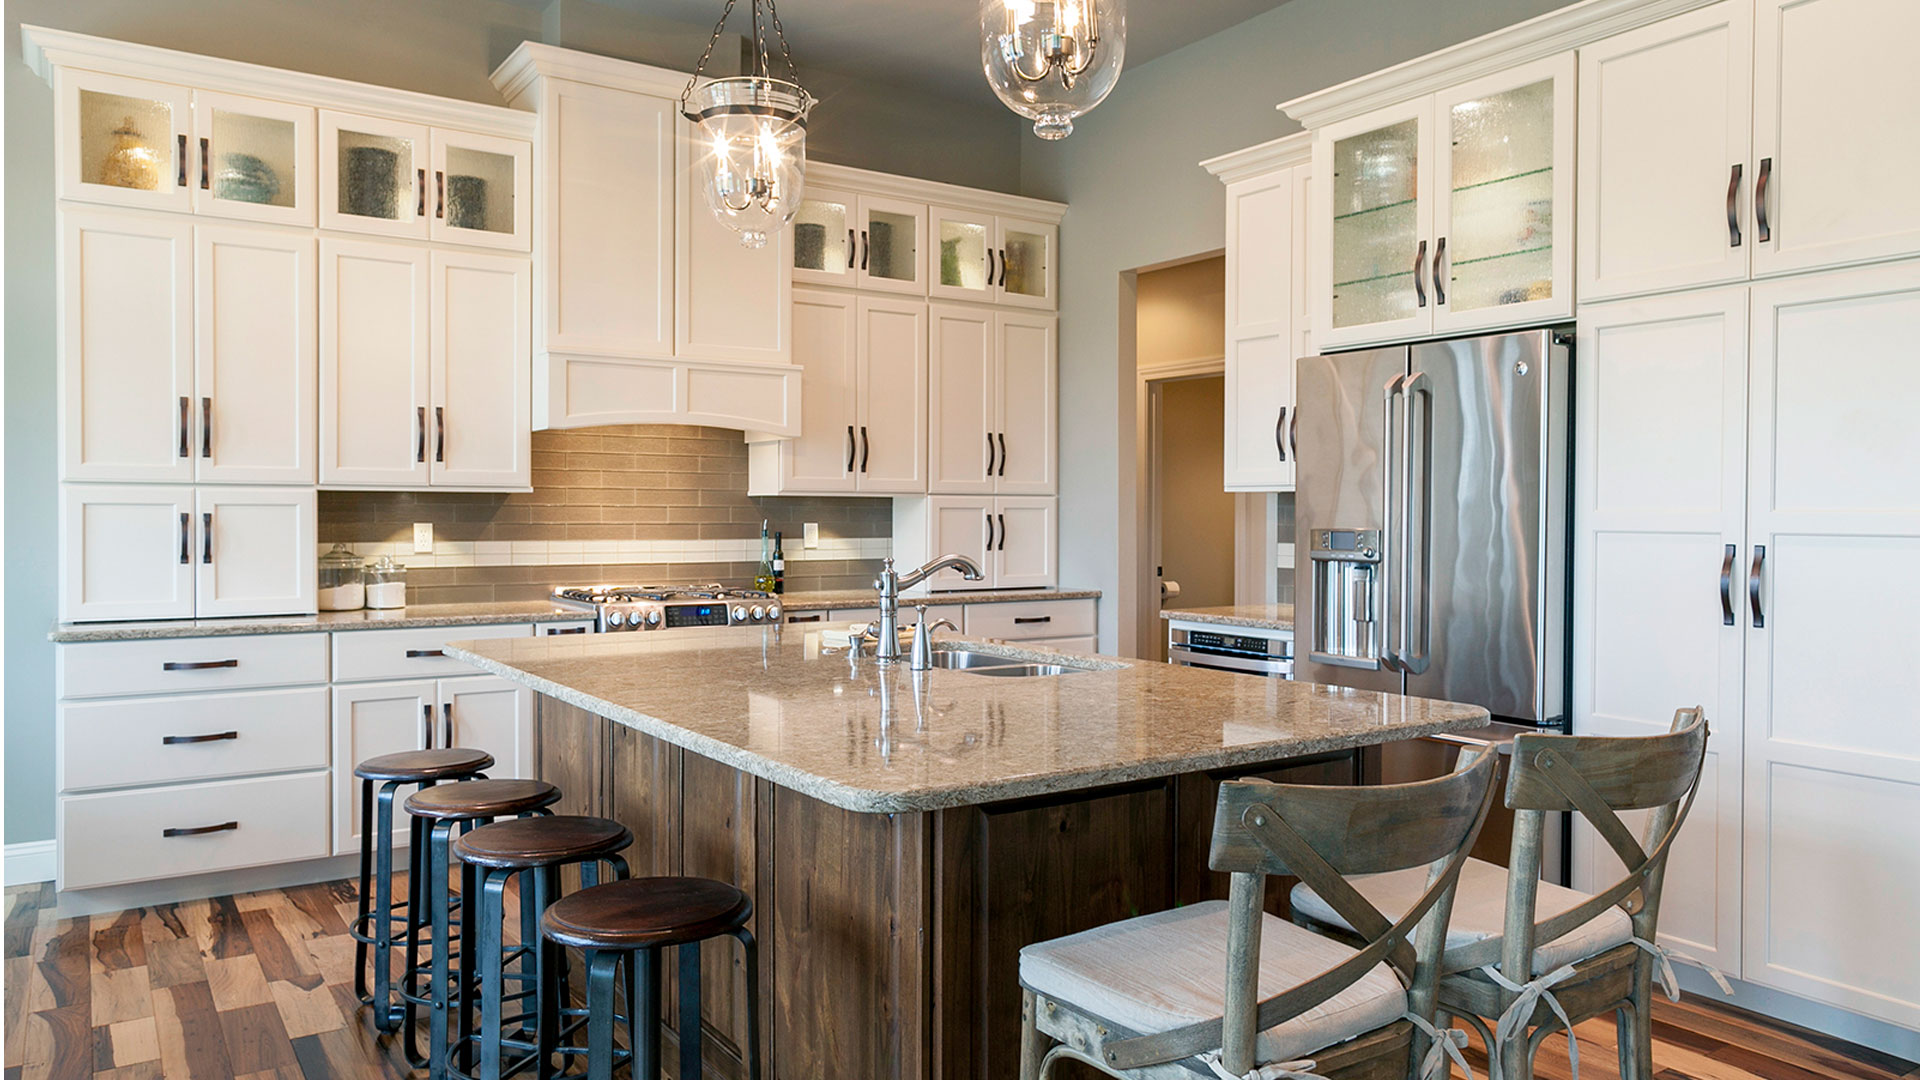 Custom Kitchen Cabinets for your Home Remodeling project in Marion County, FL